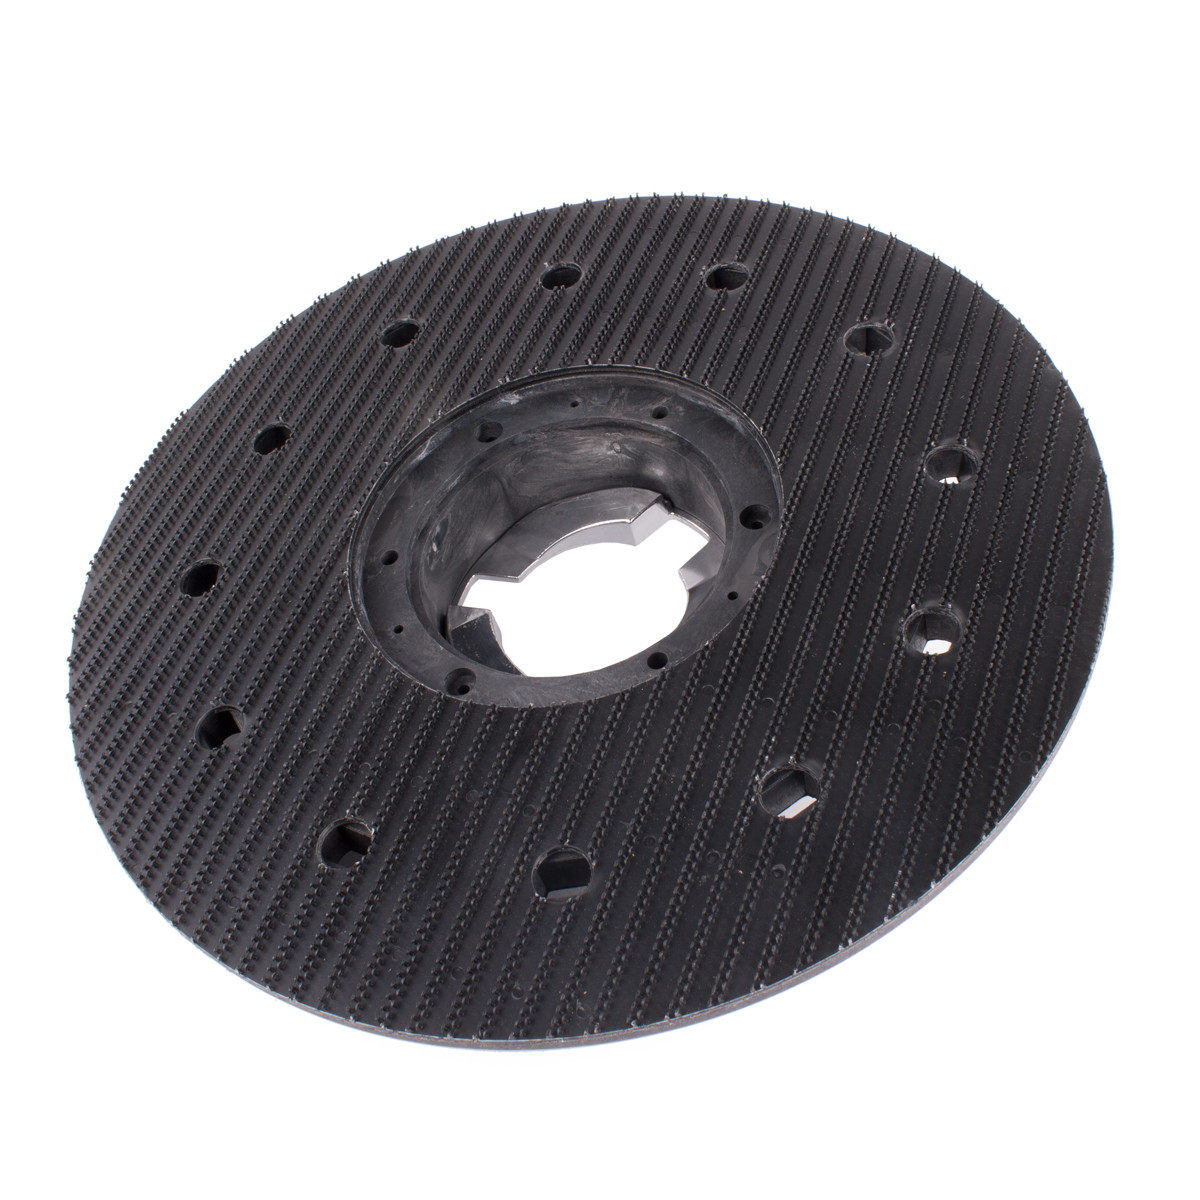 20 Inch Pad Driver For Floor Buffers on rubbermaid catalog